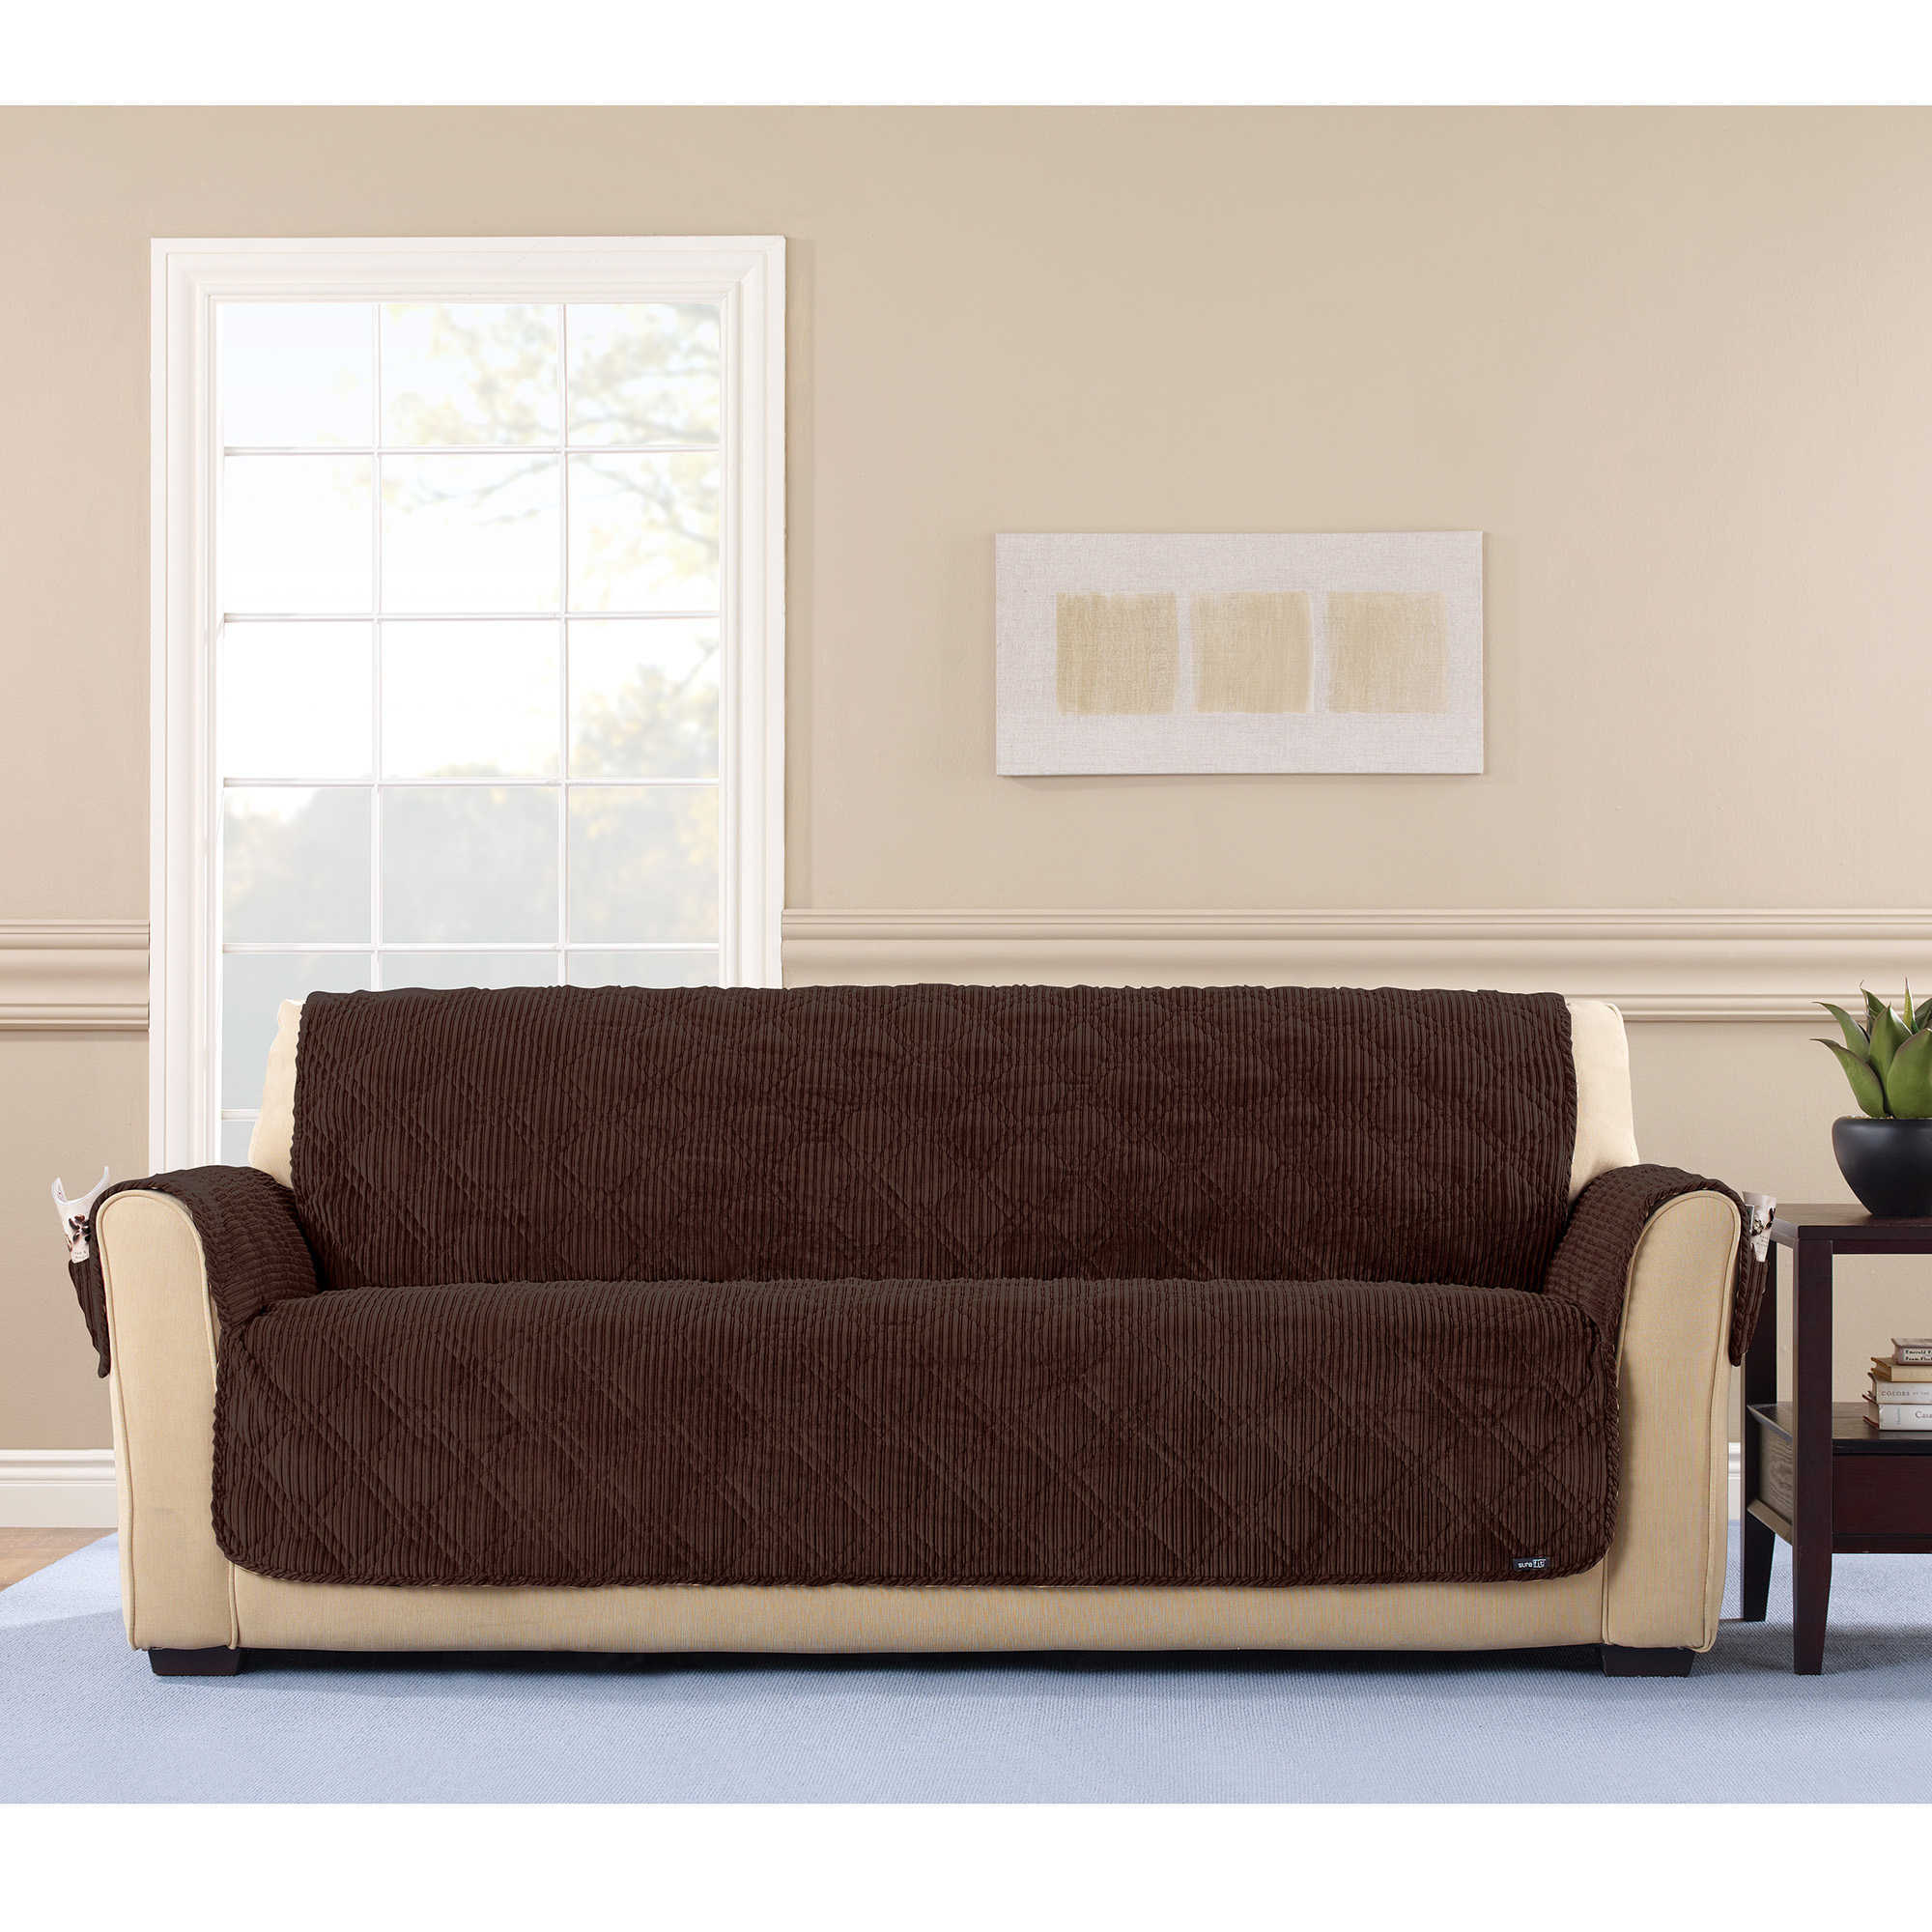 Beautiful Shop Sure Fit Wide Wale Corduroy Sofa Furniture Protector   Free Shipping  Today   Overstock.com   17703095